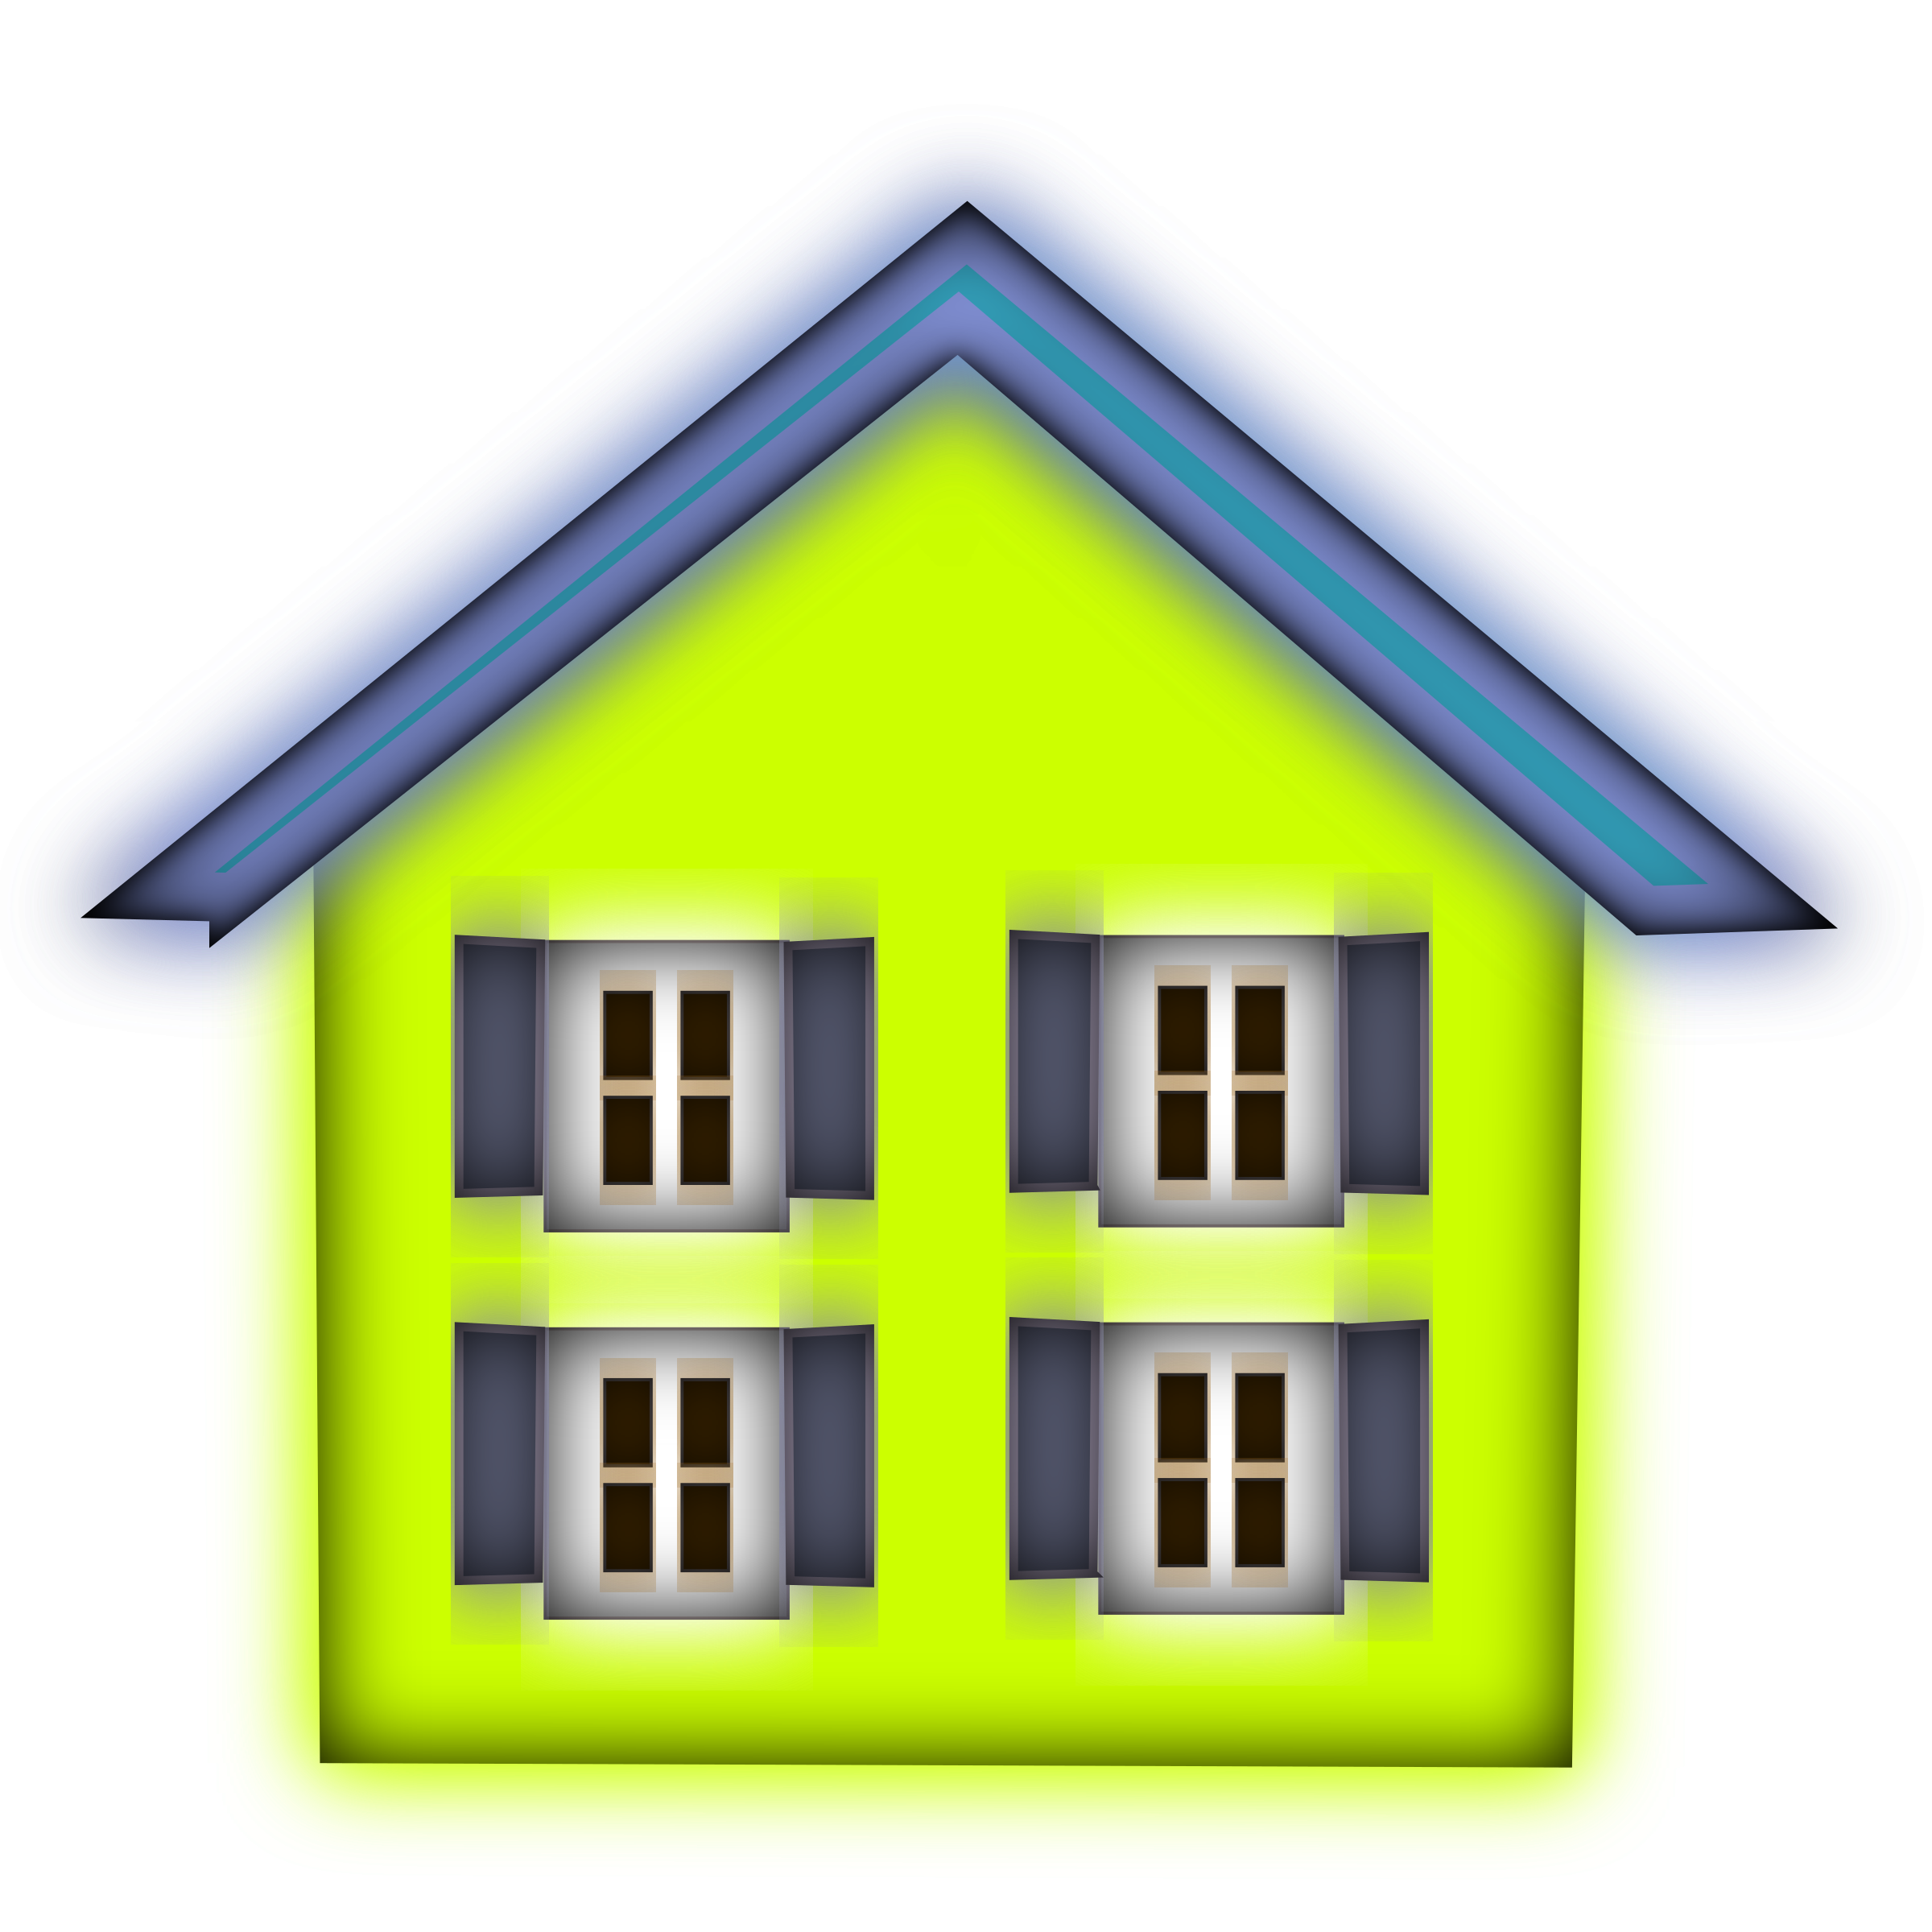 home3_icon by netalloy